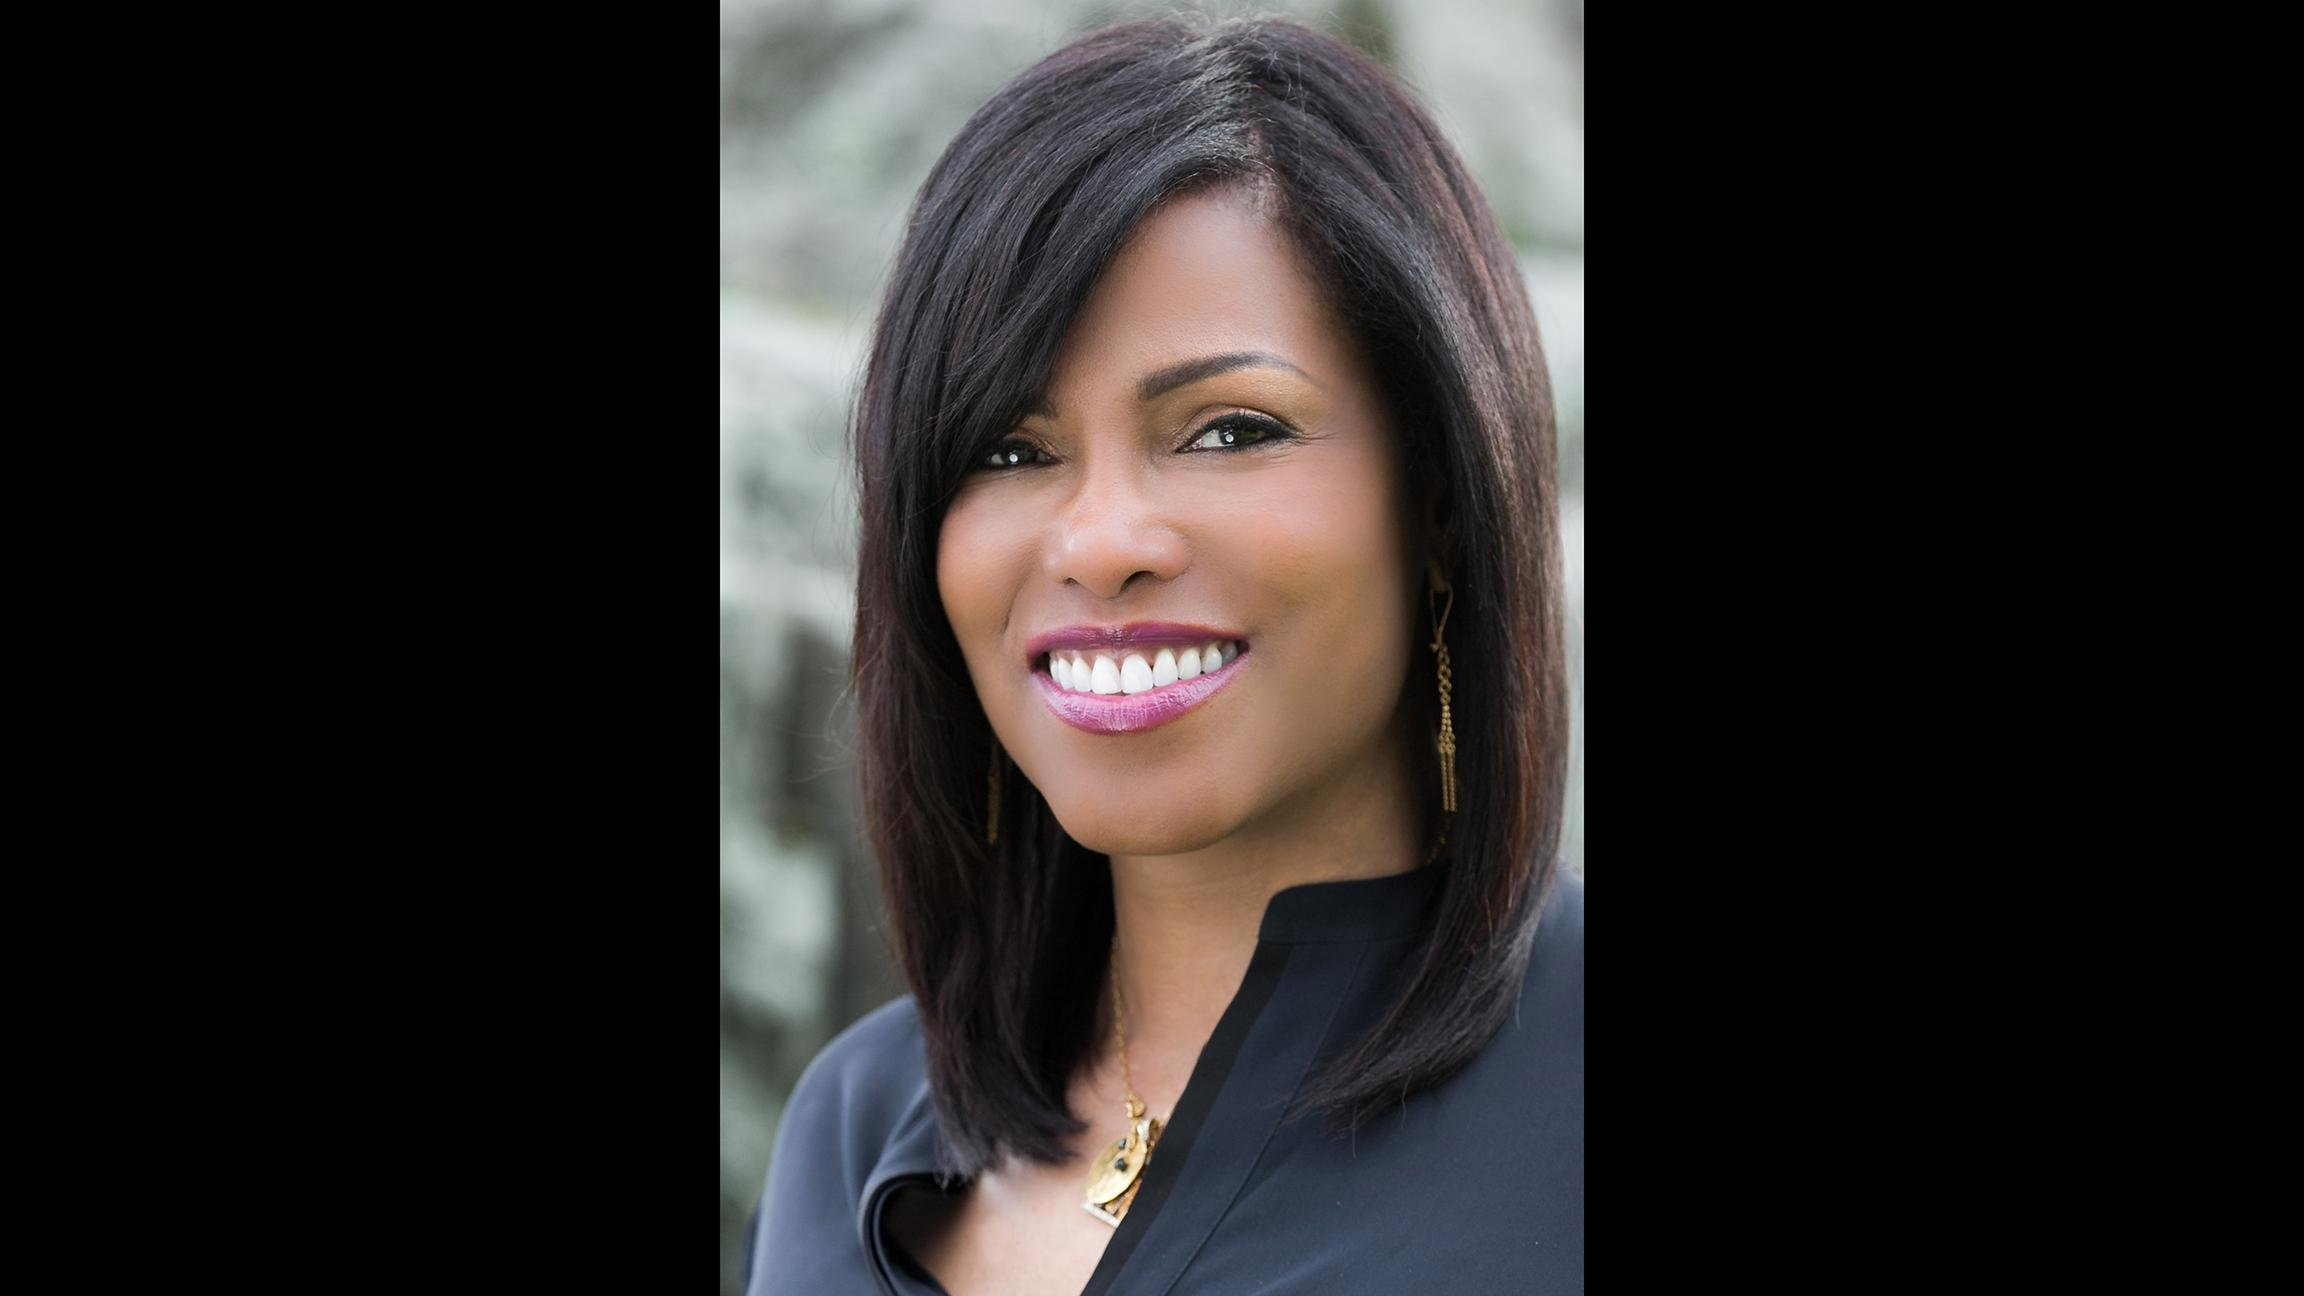 Meet author Ilyasah Shabazz at this weekend's Harlem Fine Arts Show.